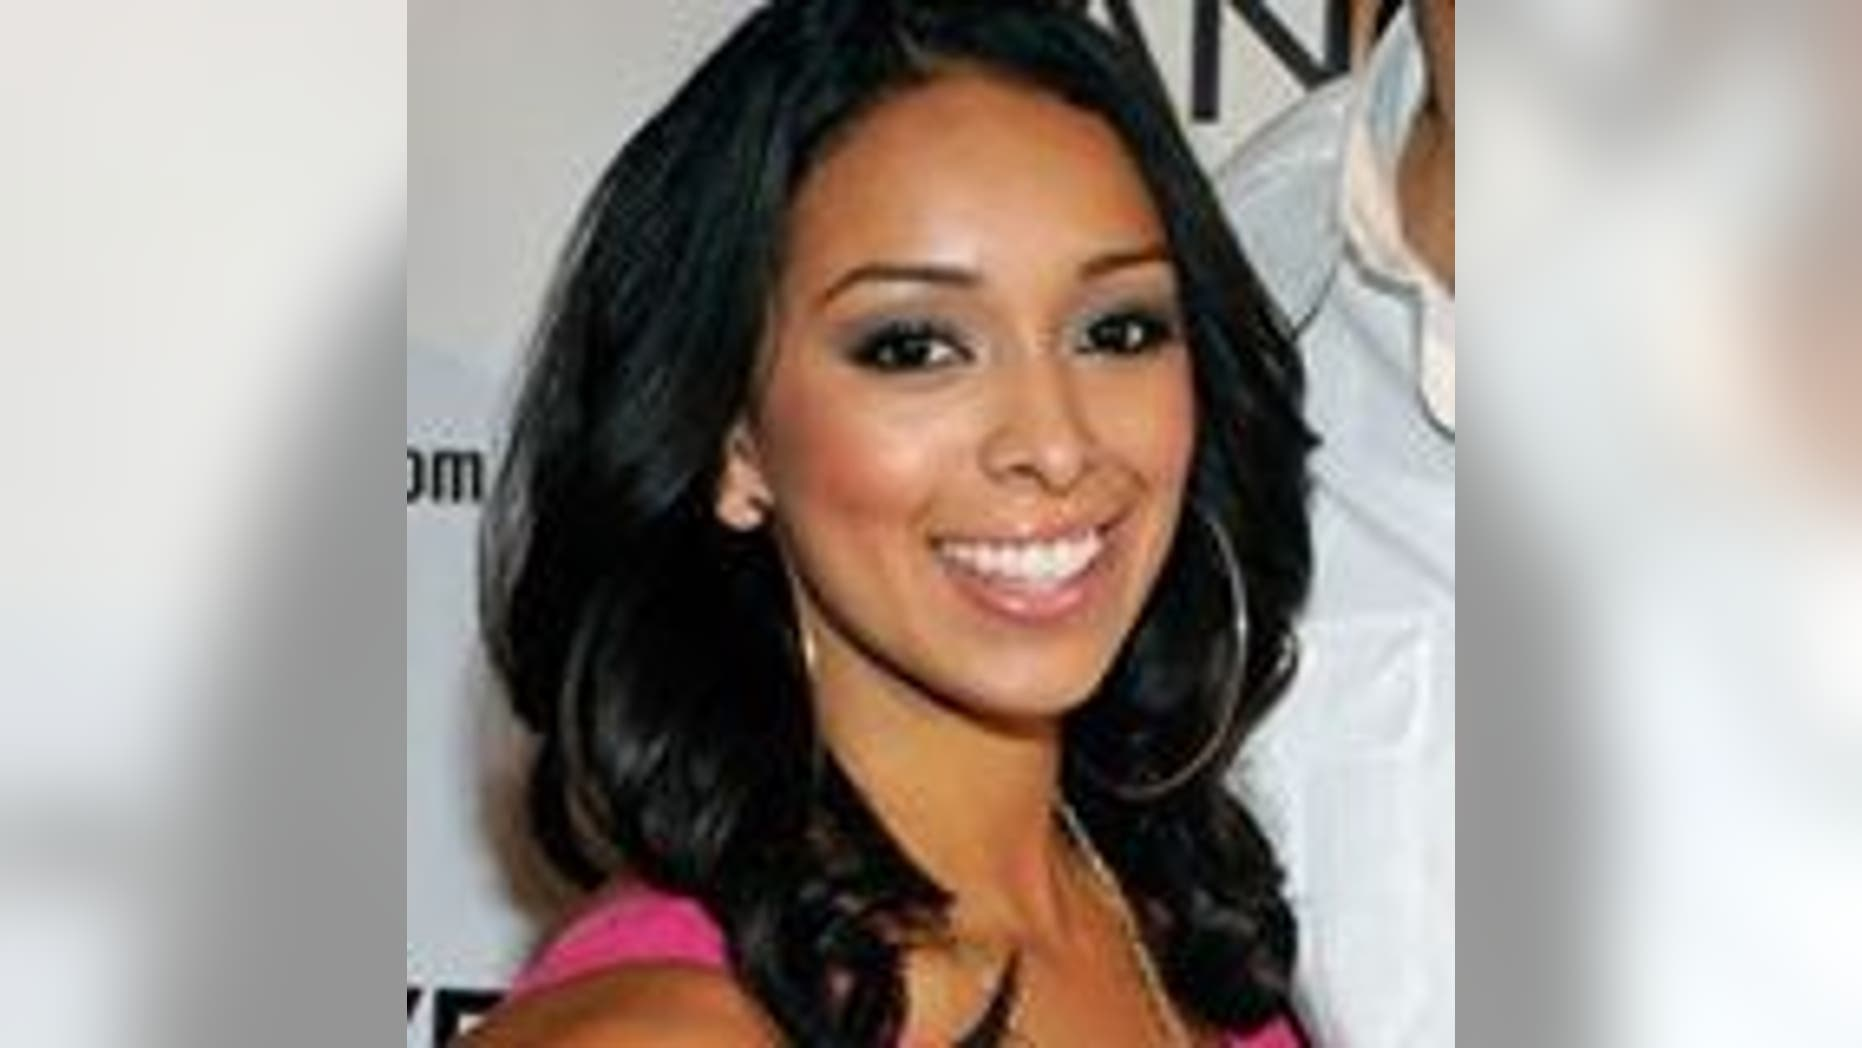 Gloria Govan, 33, was arrested Friday after an altercation with her ex-husband, retired NBA player Matt Barnes, a report said.